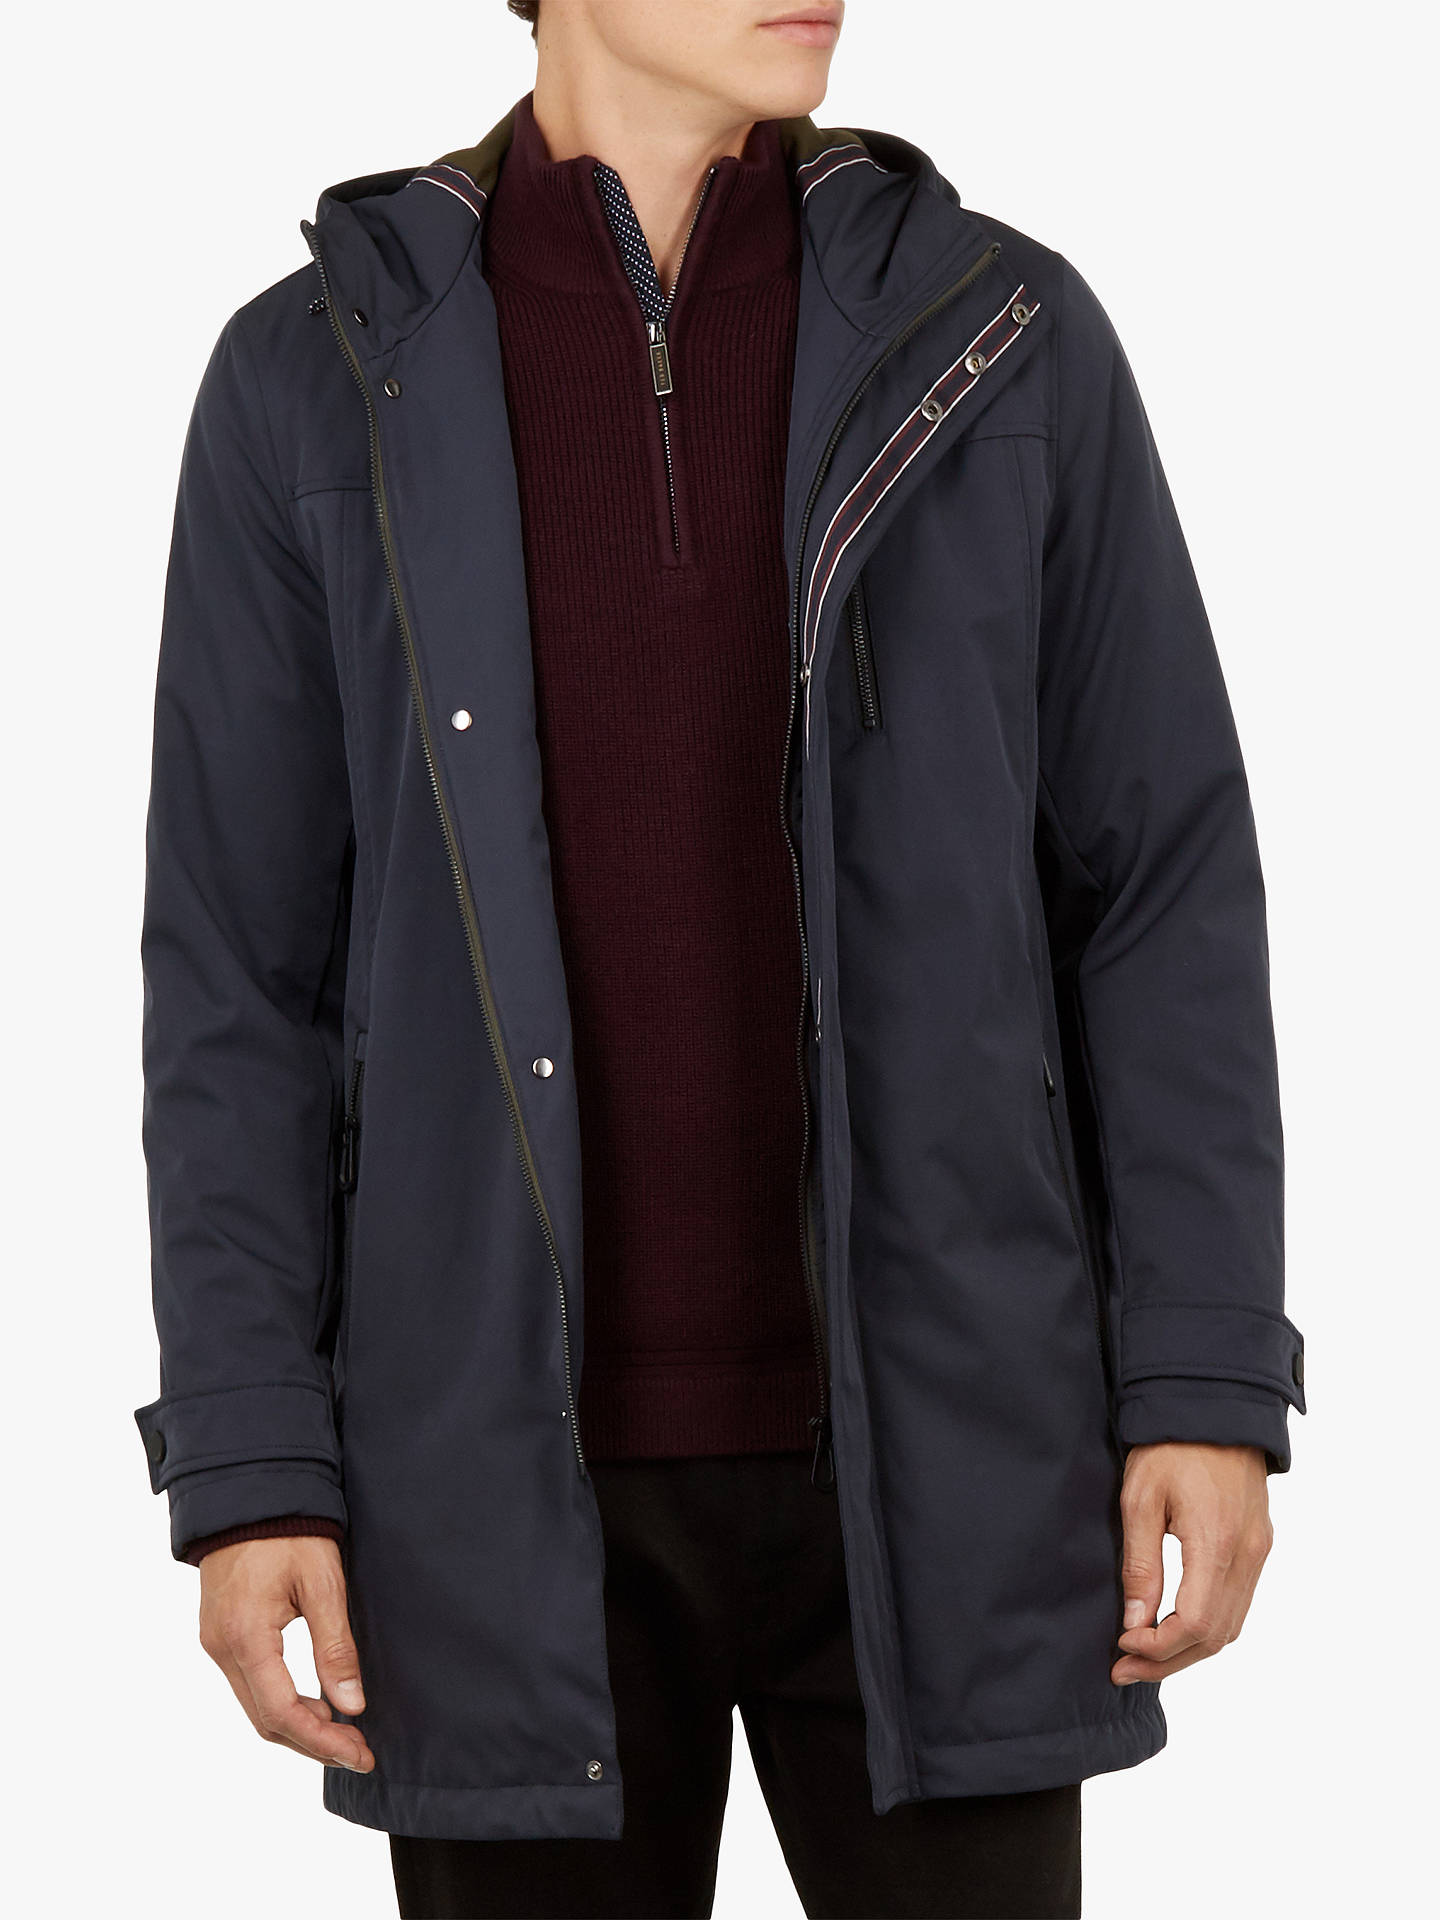 BuyTed Baker Rockfrt Quilted Hooded Parka Coat, Navy, S Online at johnlewis.com